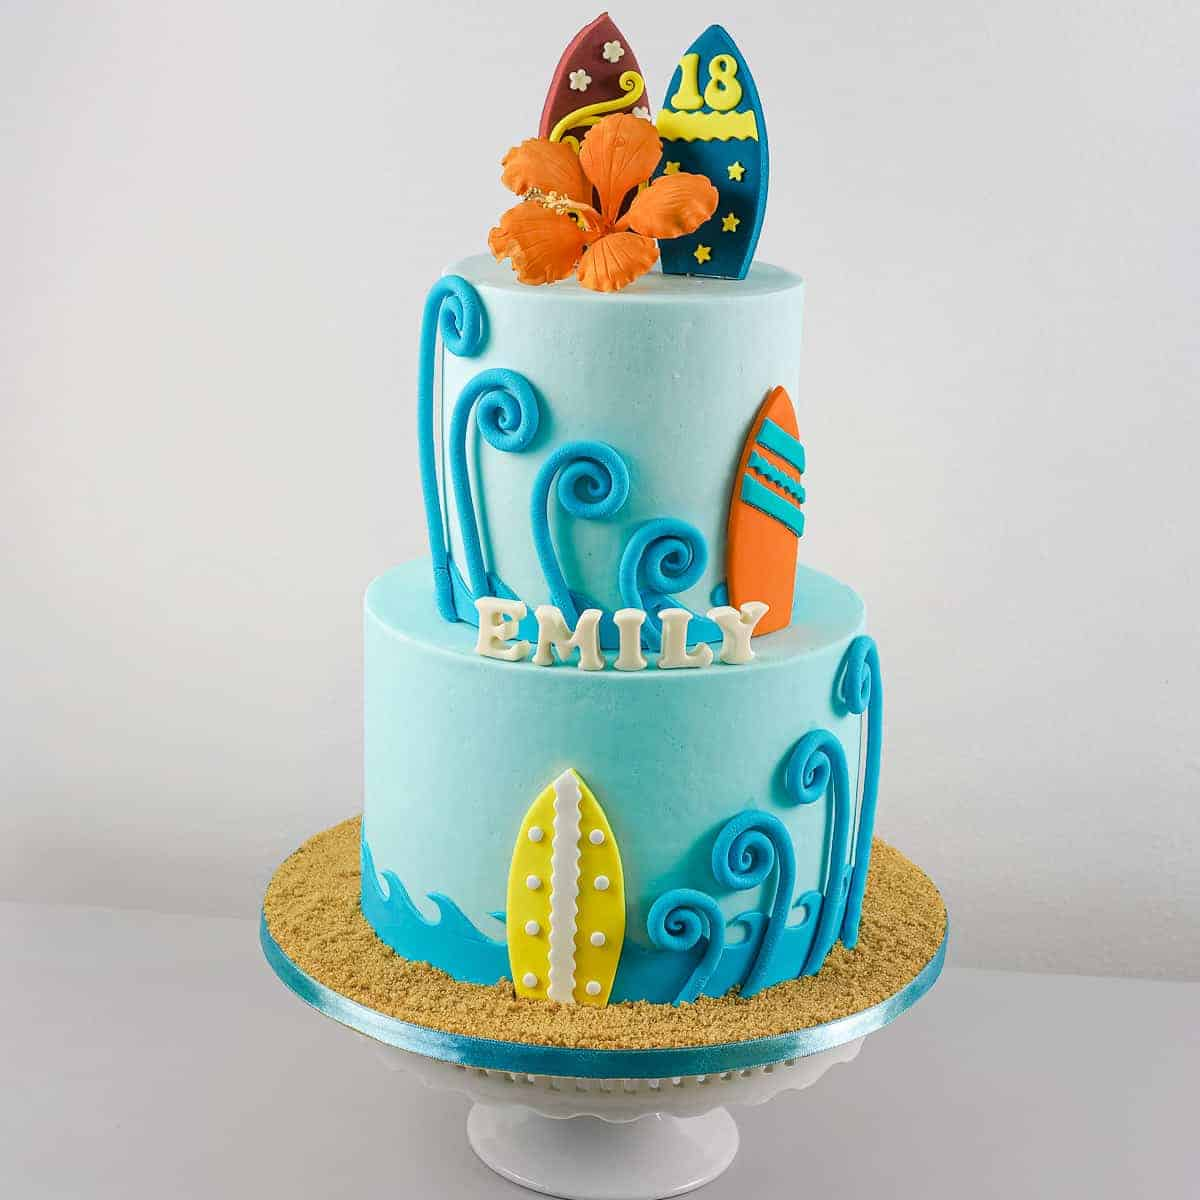 A 2 tier blue beach themed birthday cake with colorful fondant surfboards, and an orange hibiscus topper